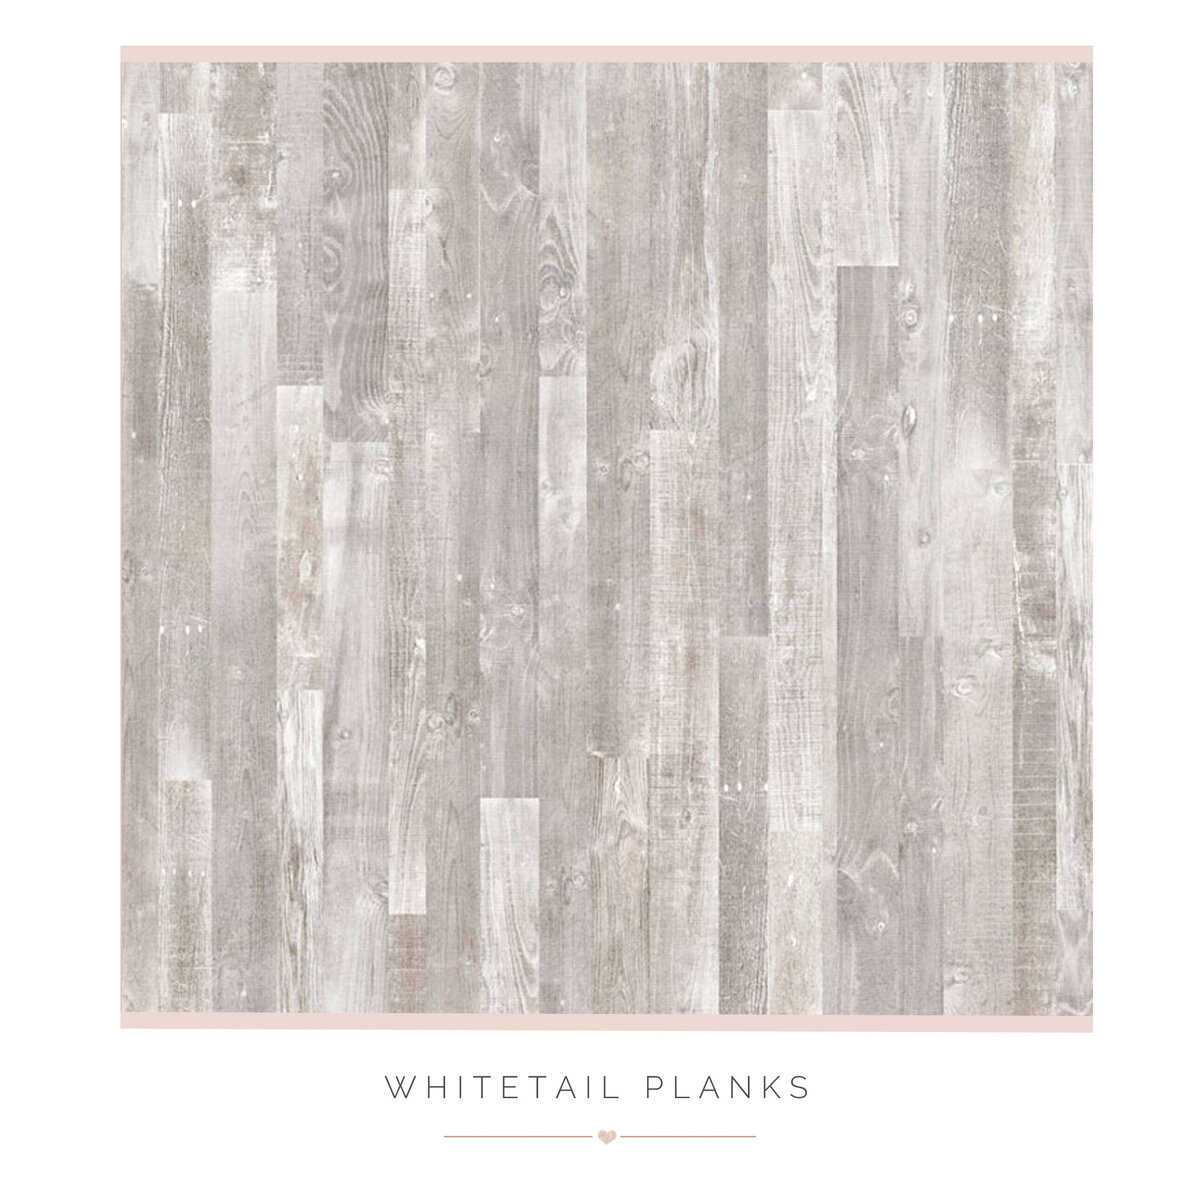 Whitetail Planks